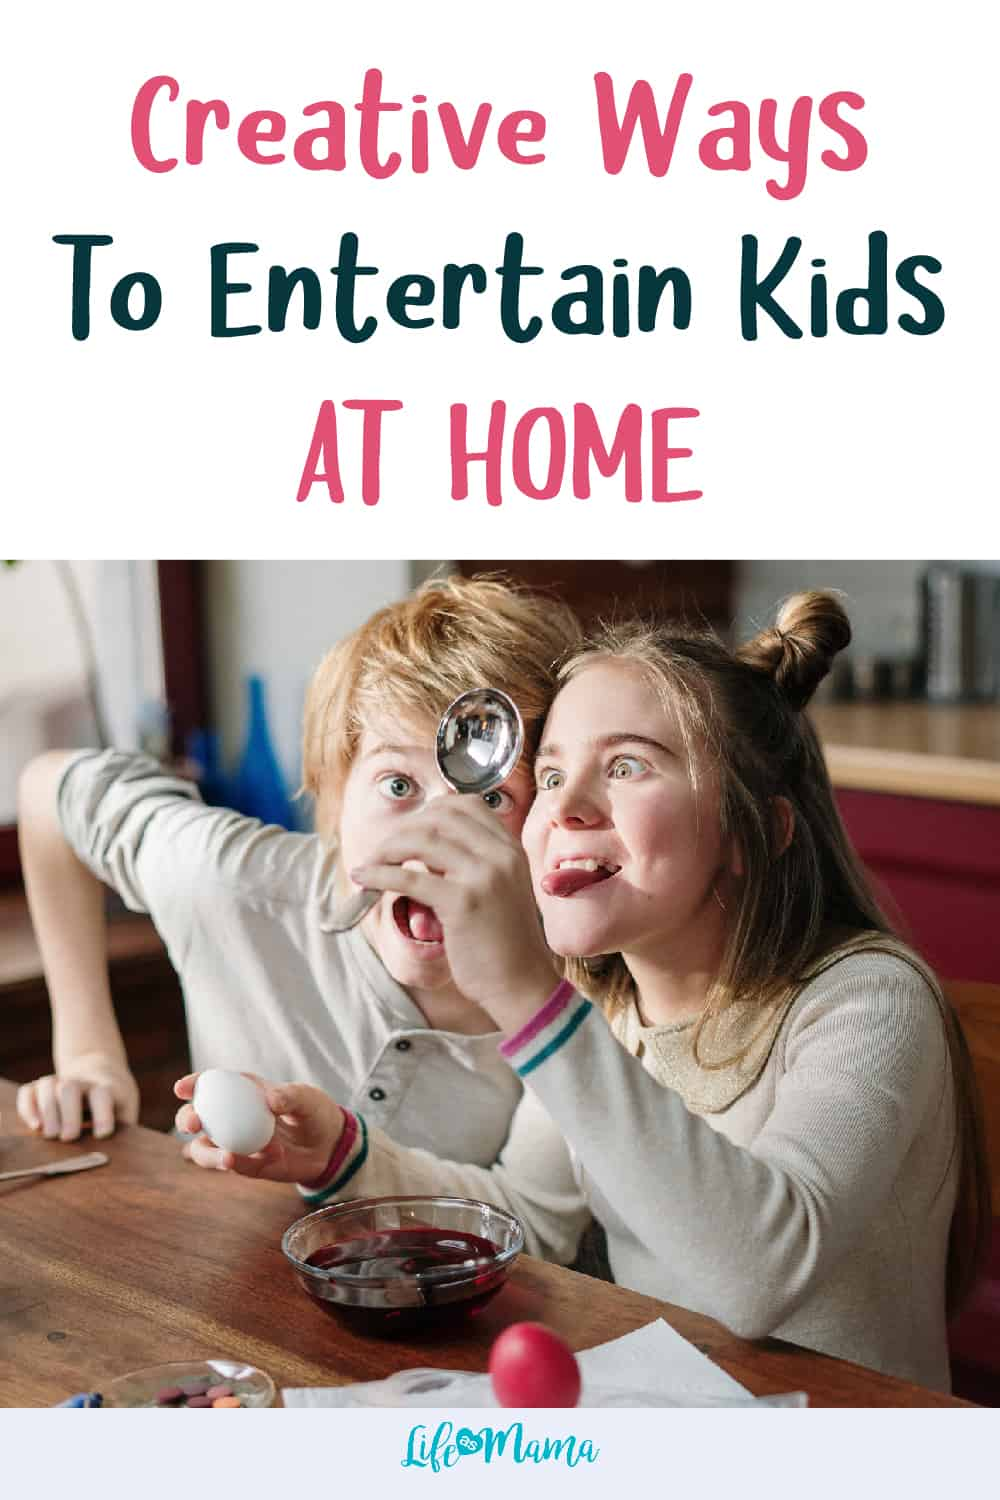 Creative Ways To Entertain Kids At Home-01-01